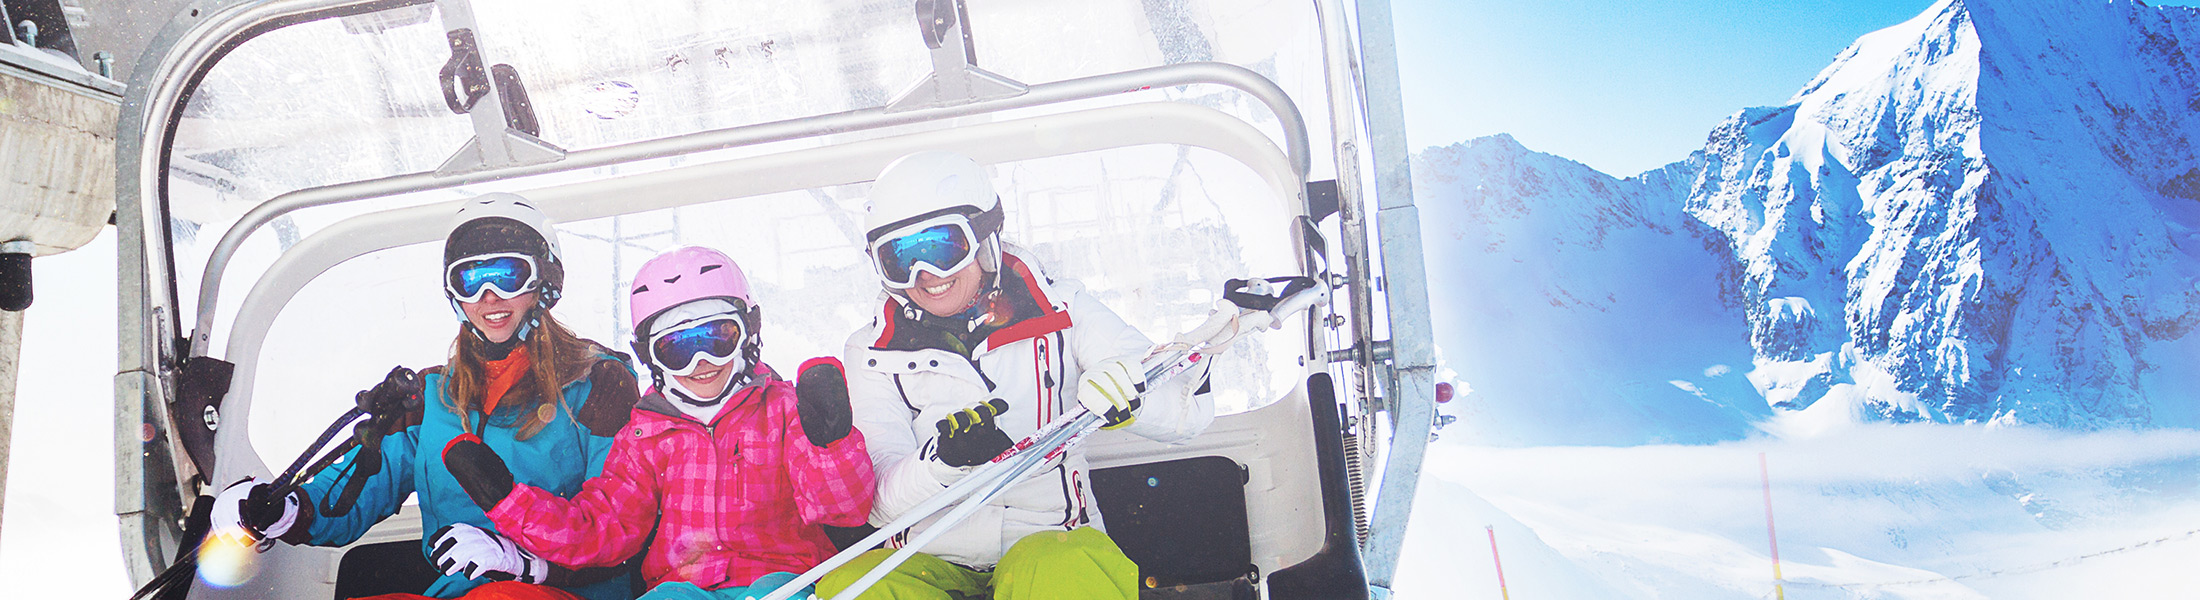 Family on a chairlift on a ski holiday